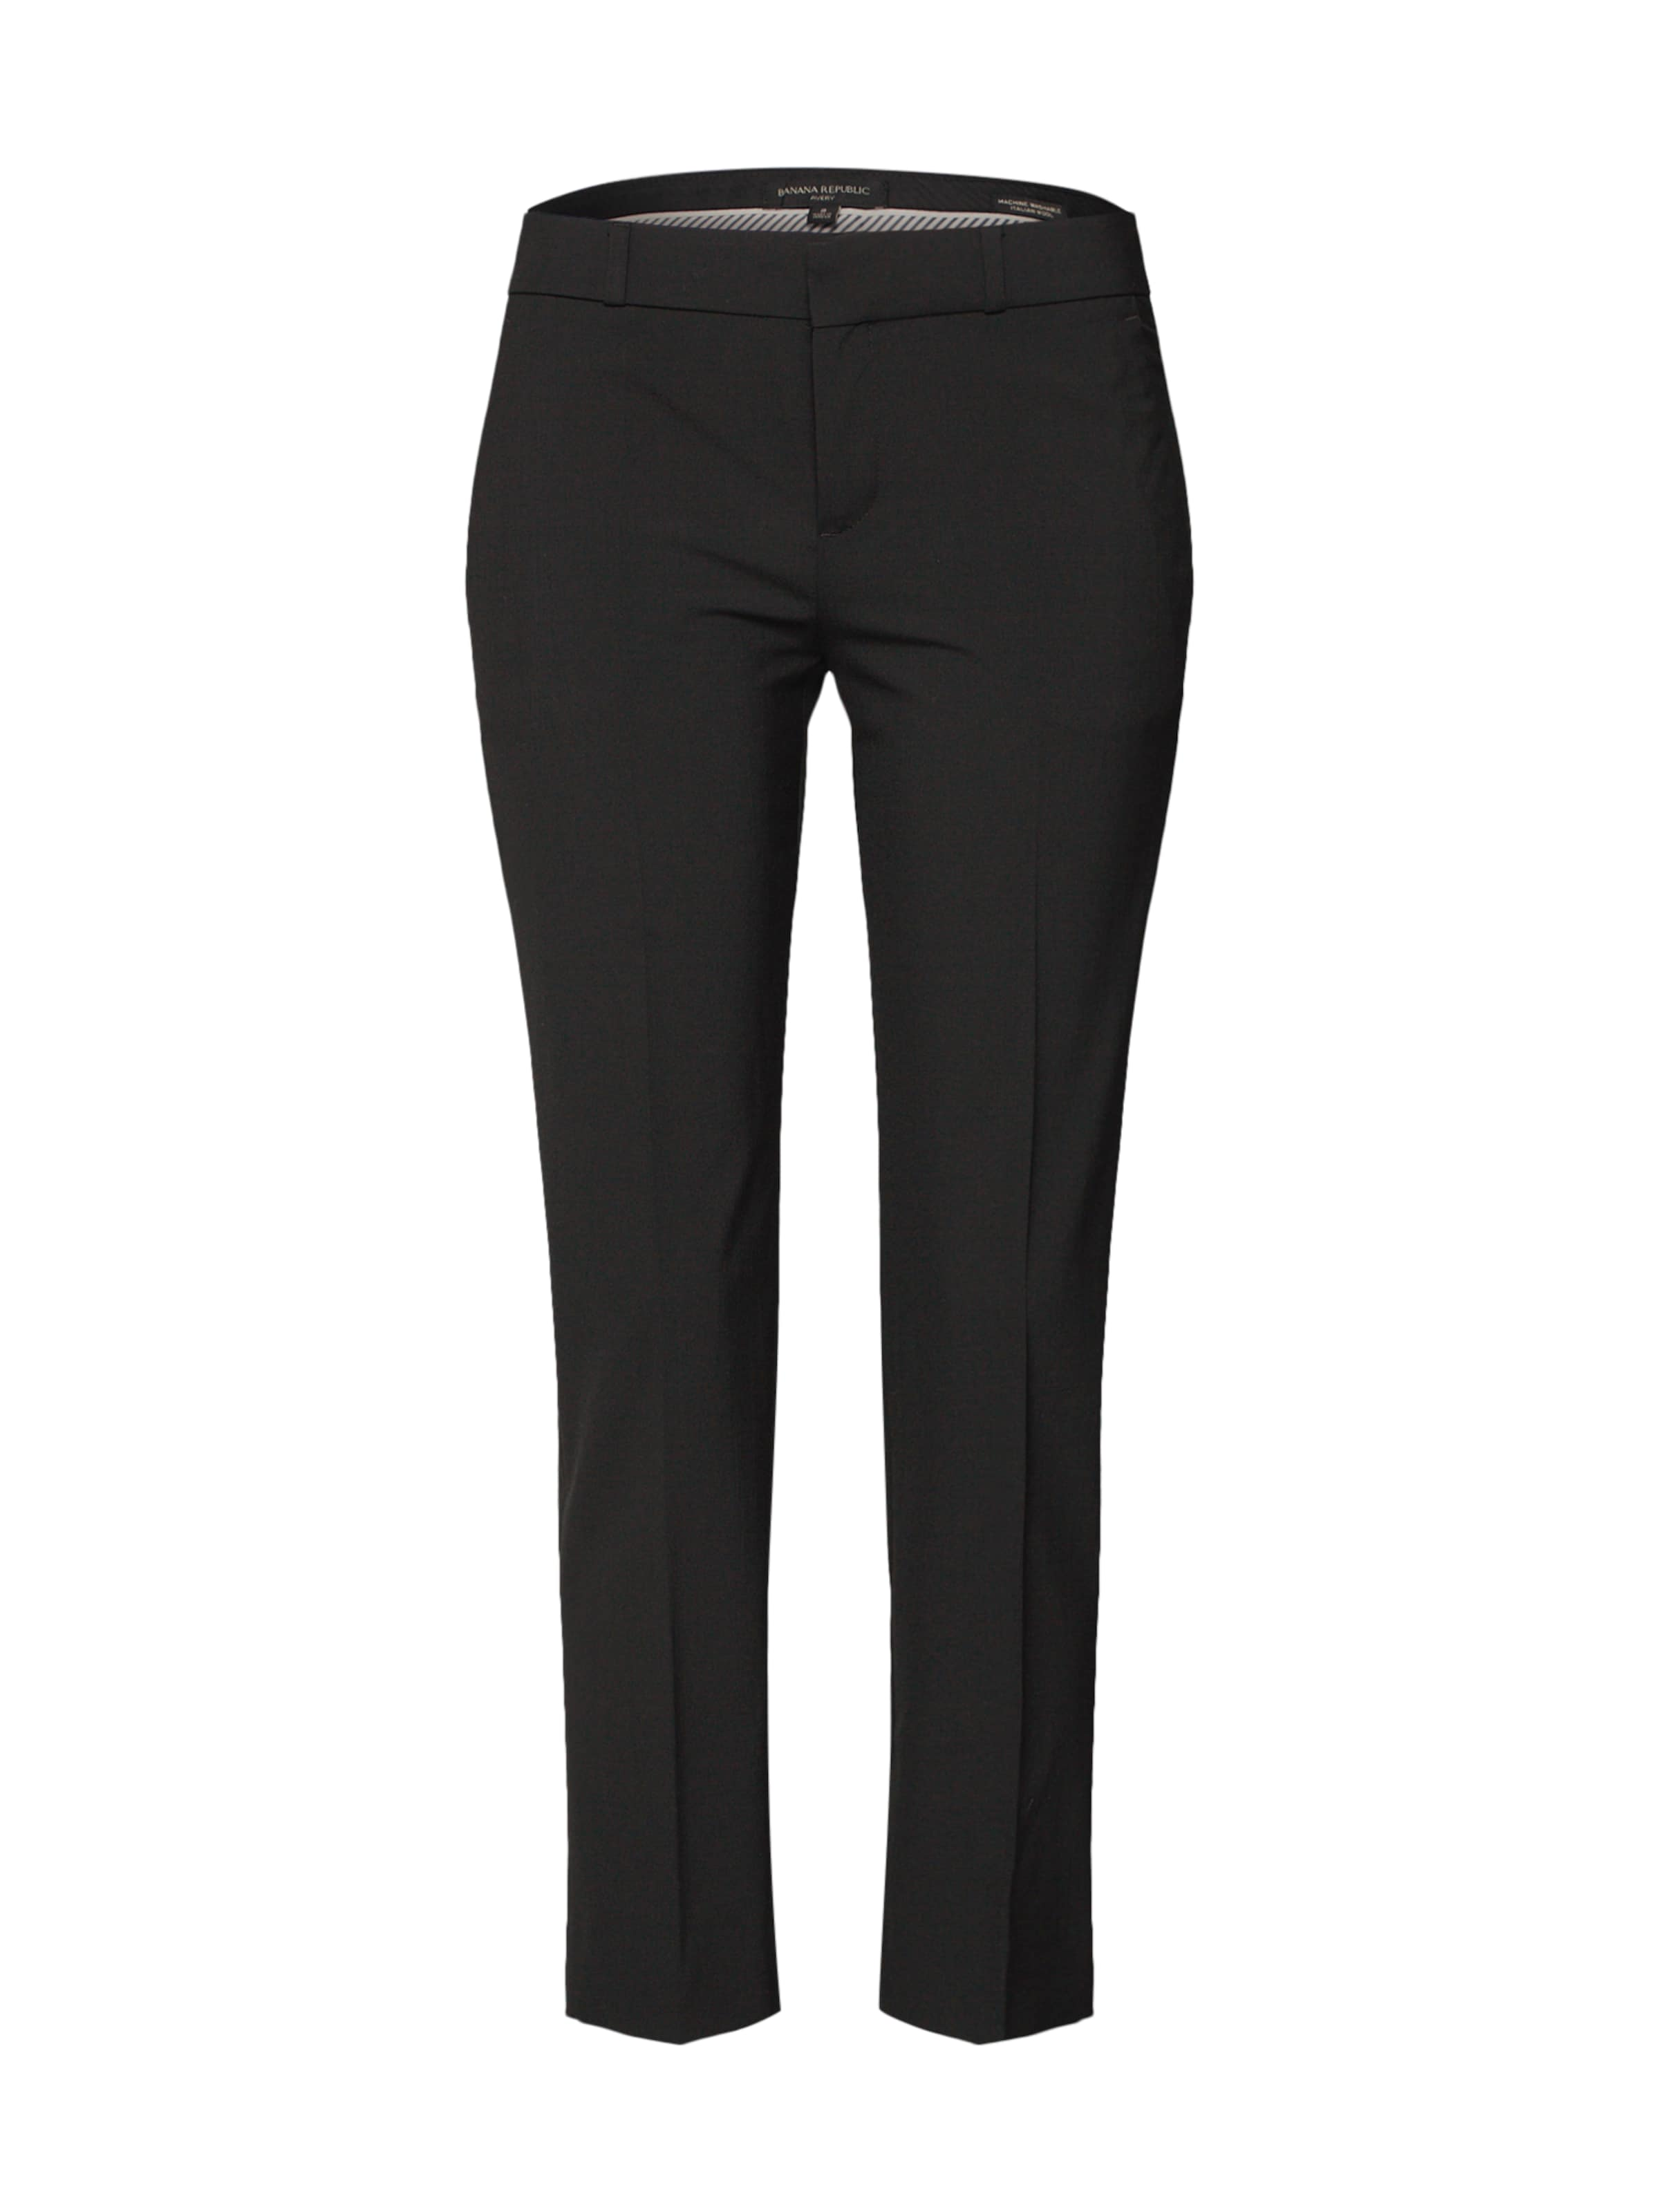 Noir À Black 'avery Republic En Plis Lww Banana Washable Pantalon Pant' hQdsrxtCB